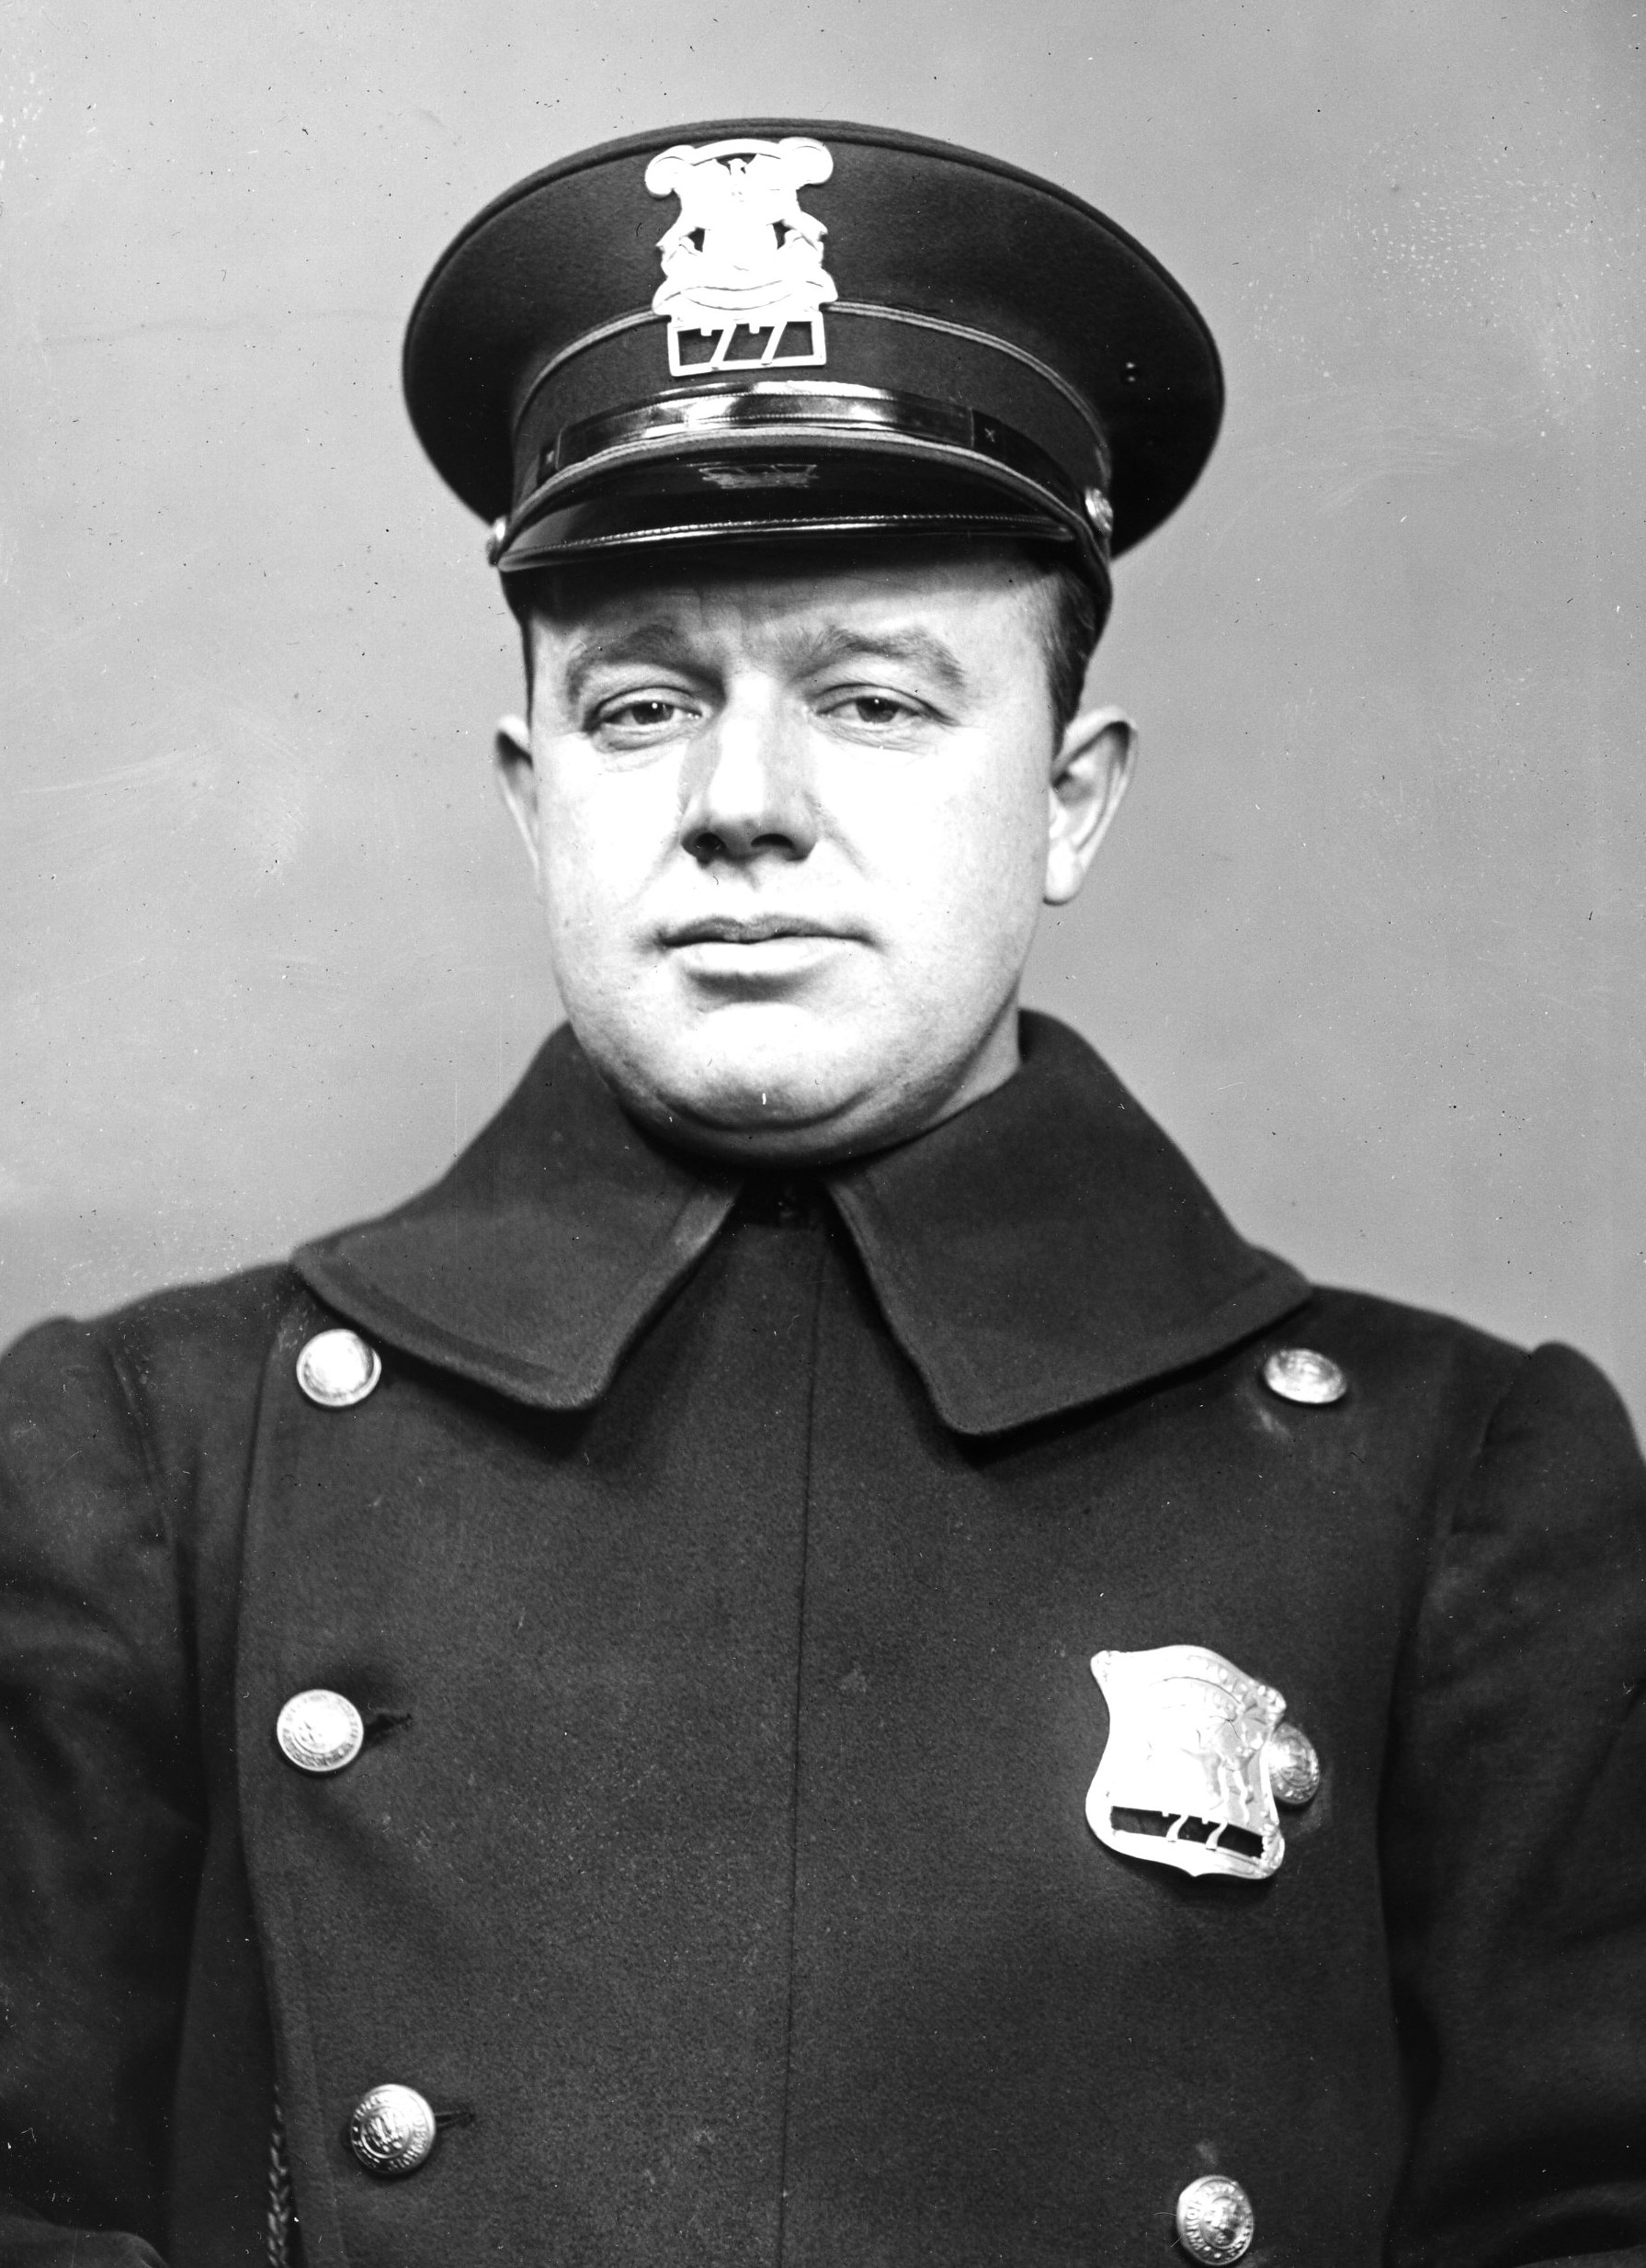 Police Officer Harold G. Roughley | Detroit Police Department, Michigan